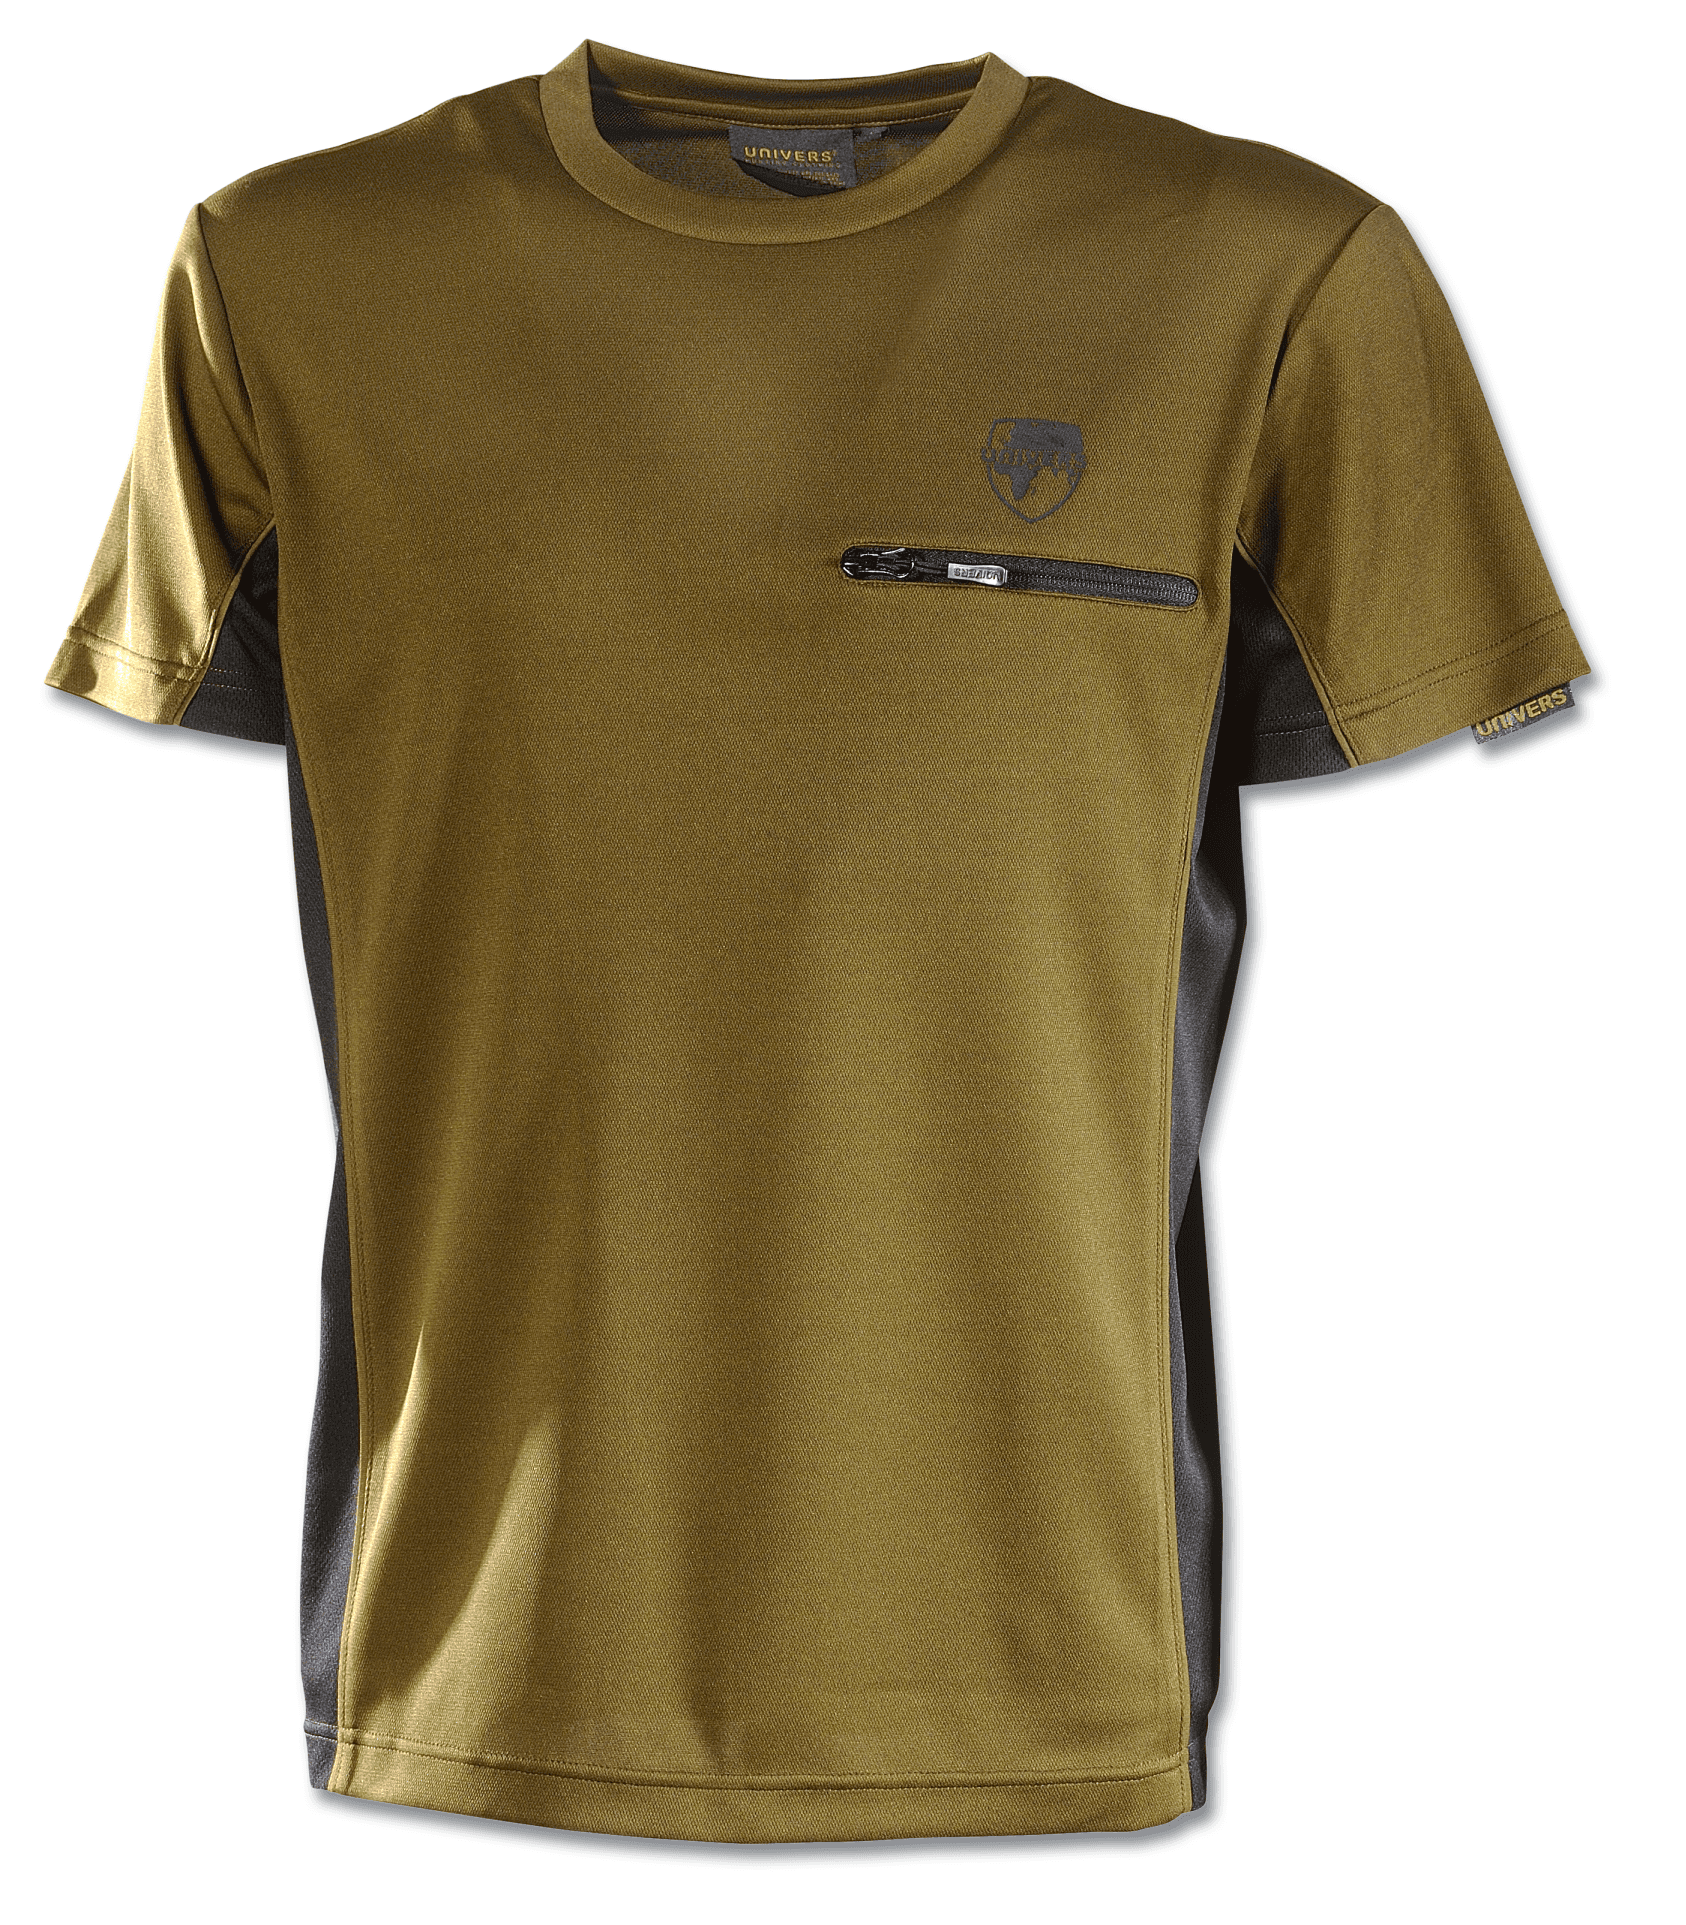 Univers Technical T-shirt 94074 / 302